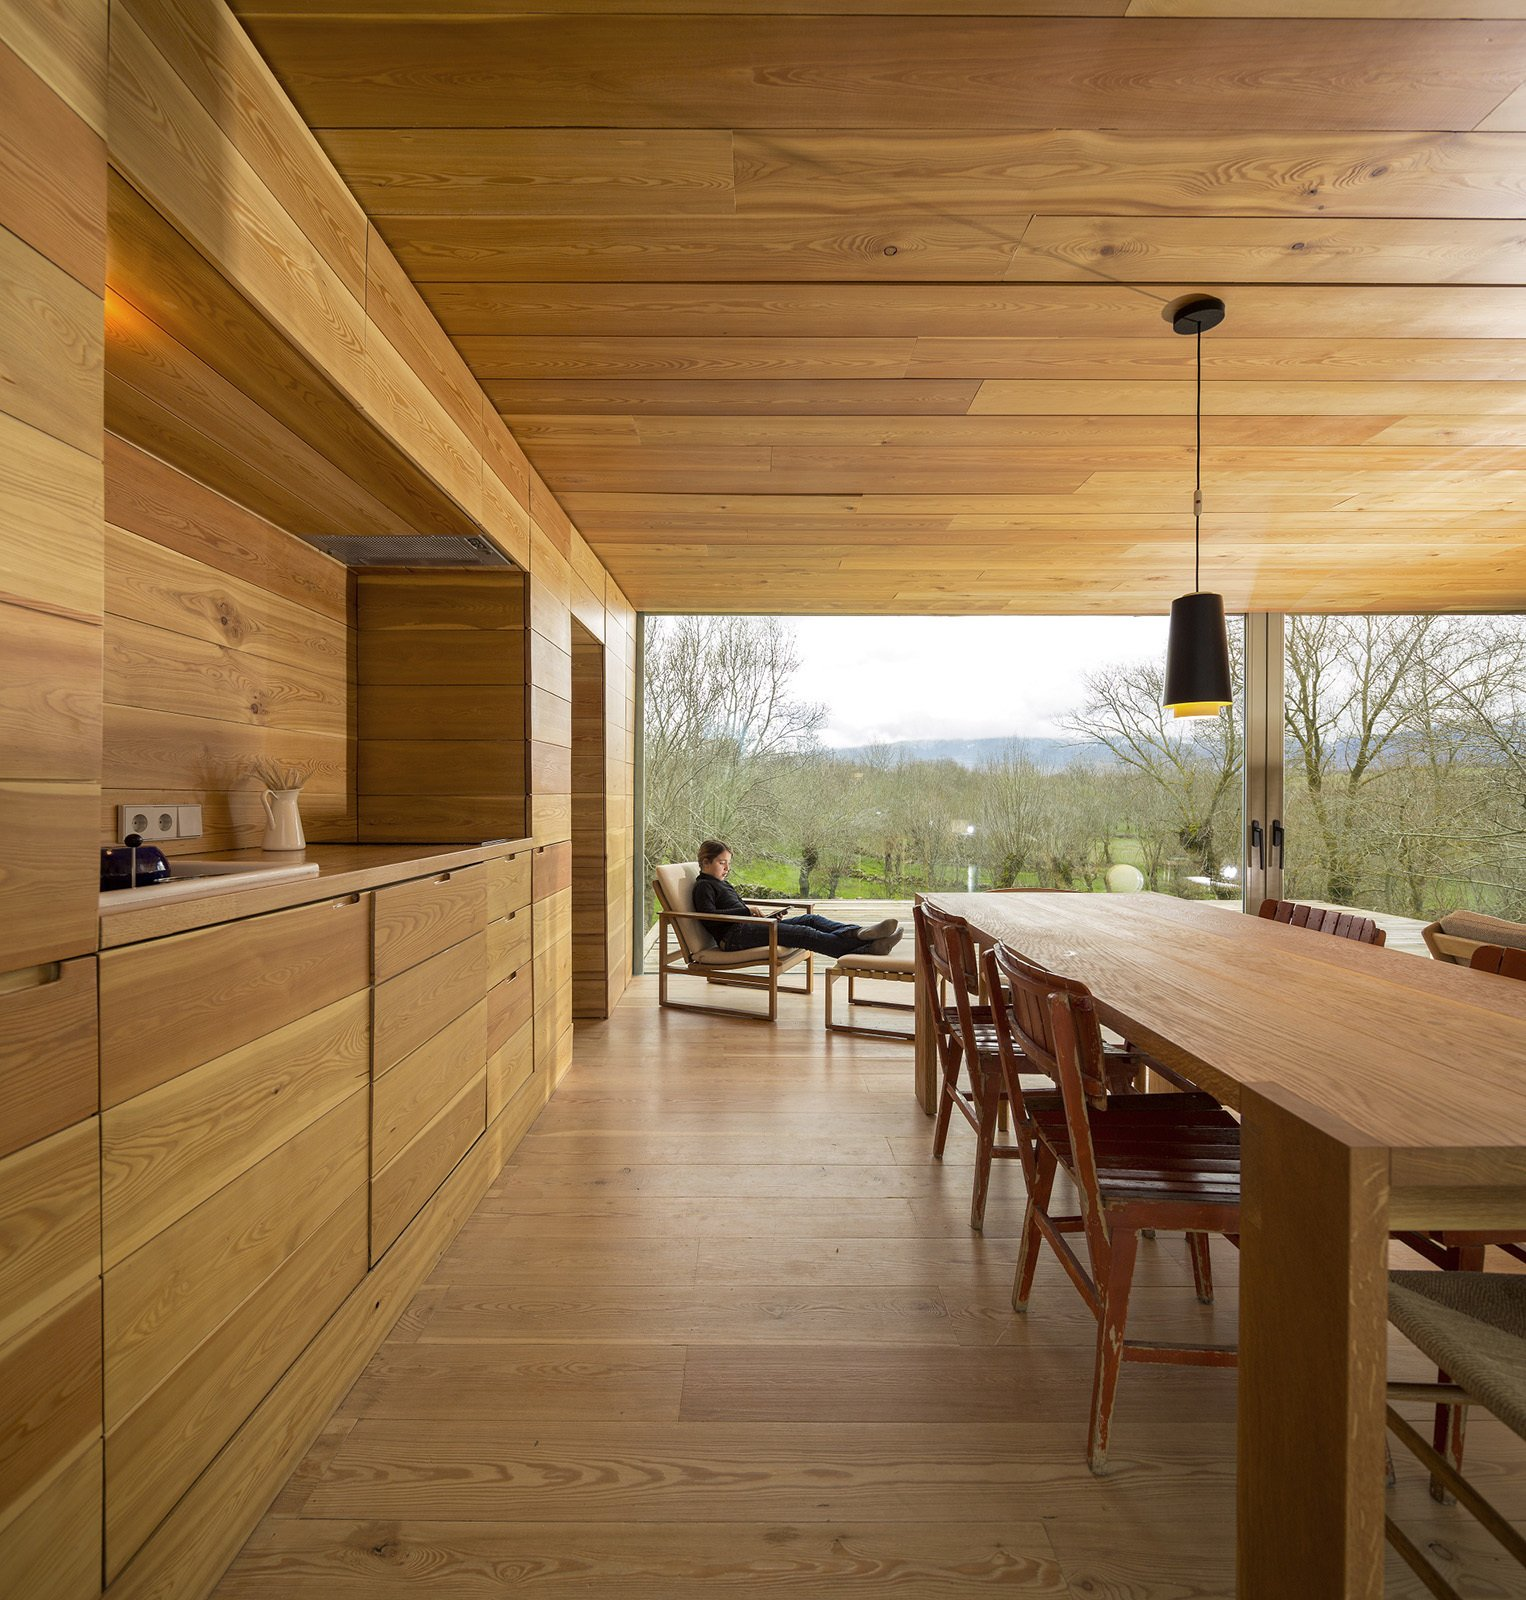 How To Recognize Different Wood Species: The 10 Most